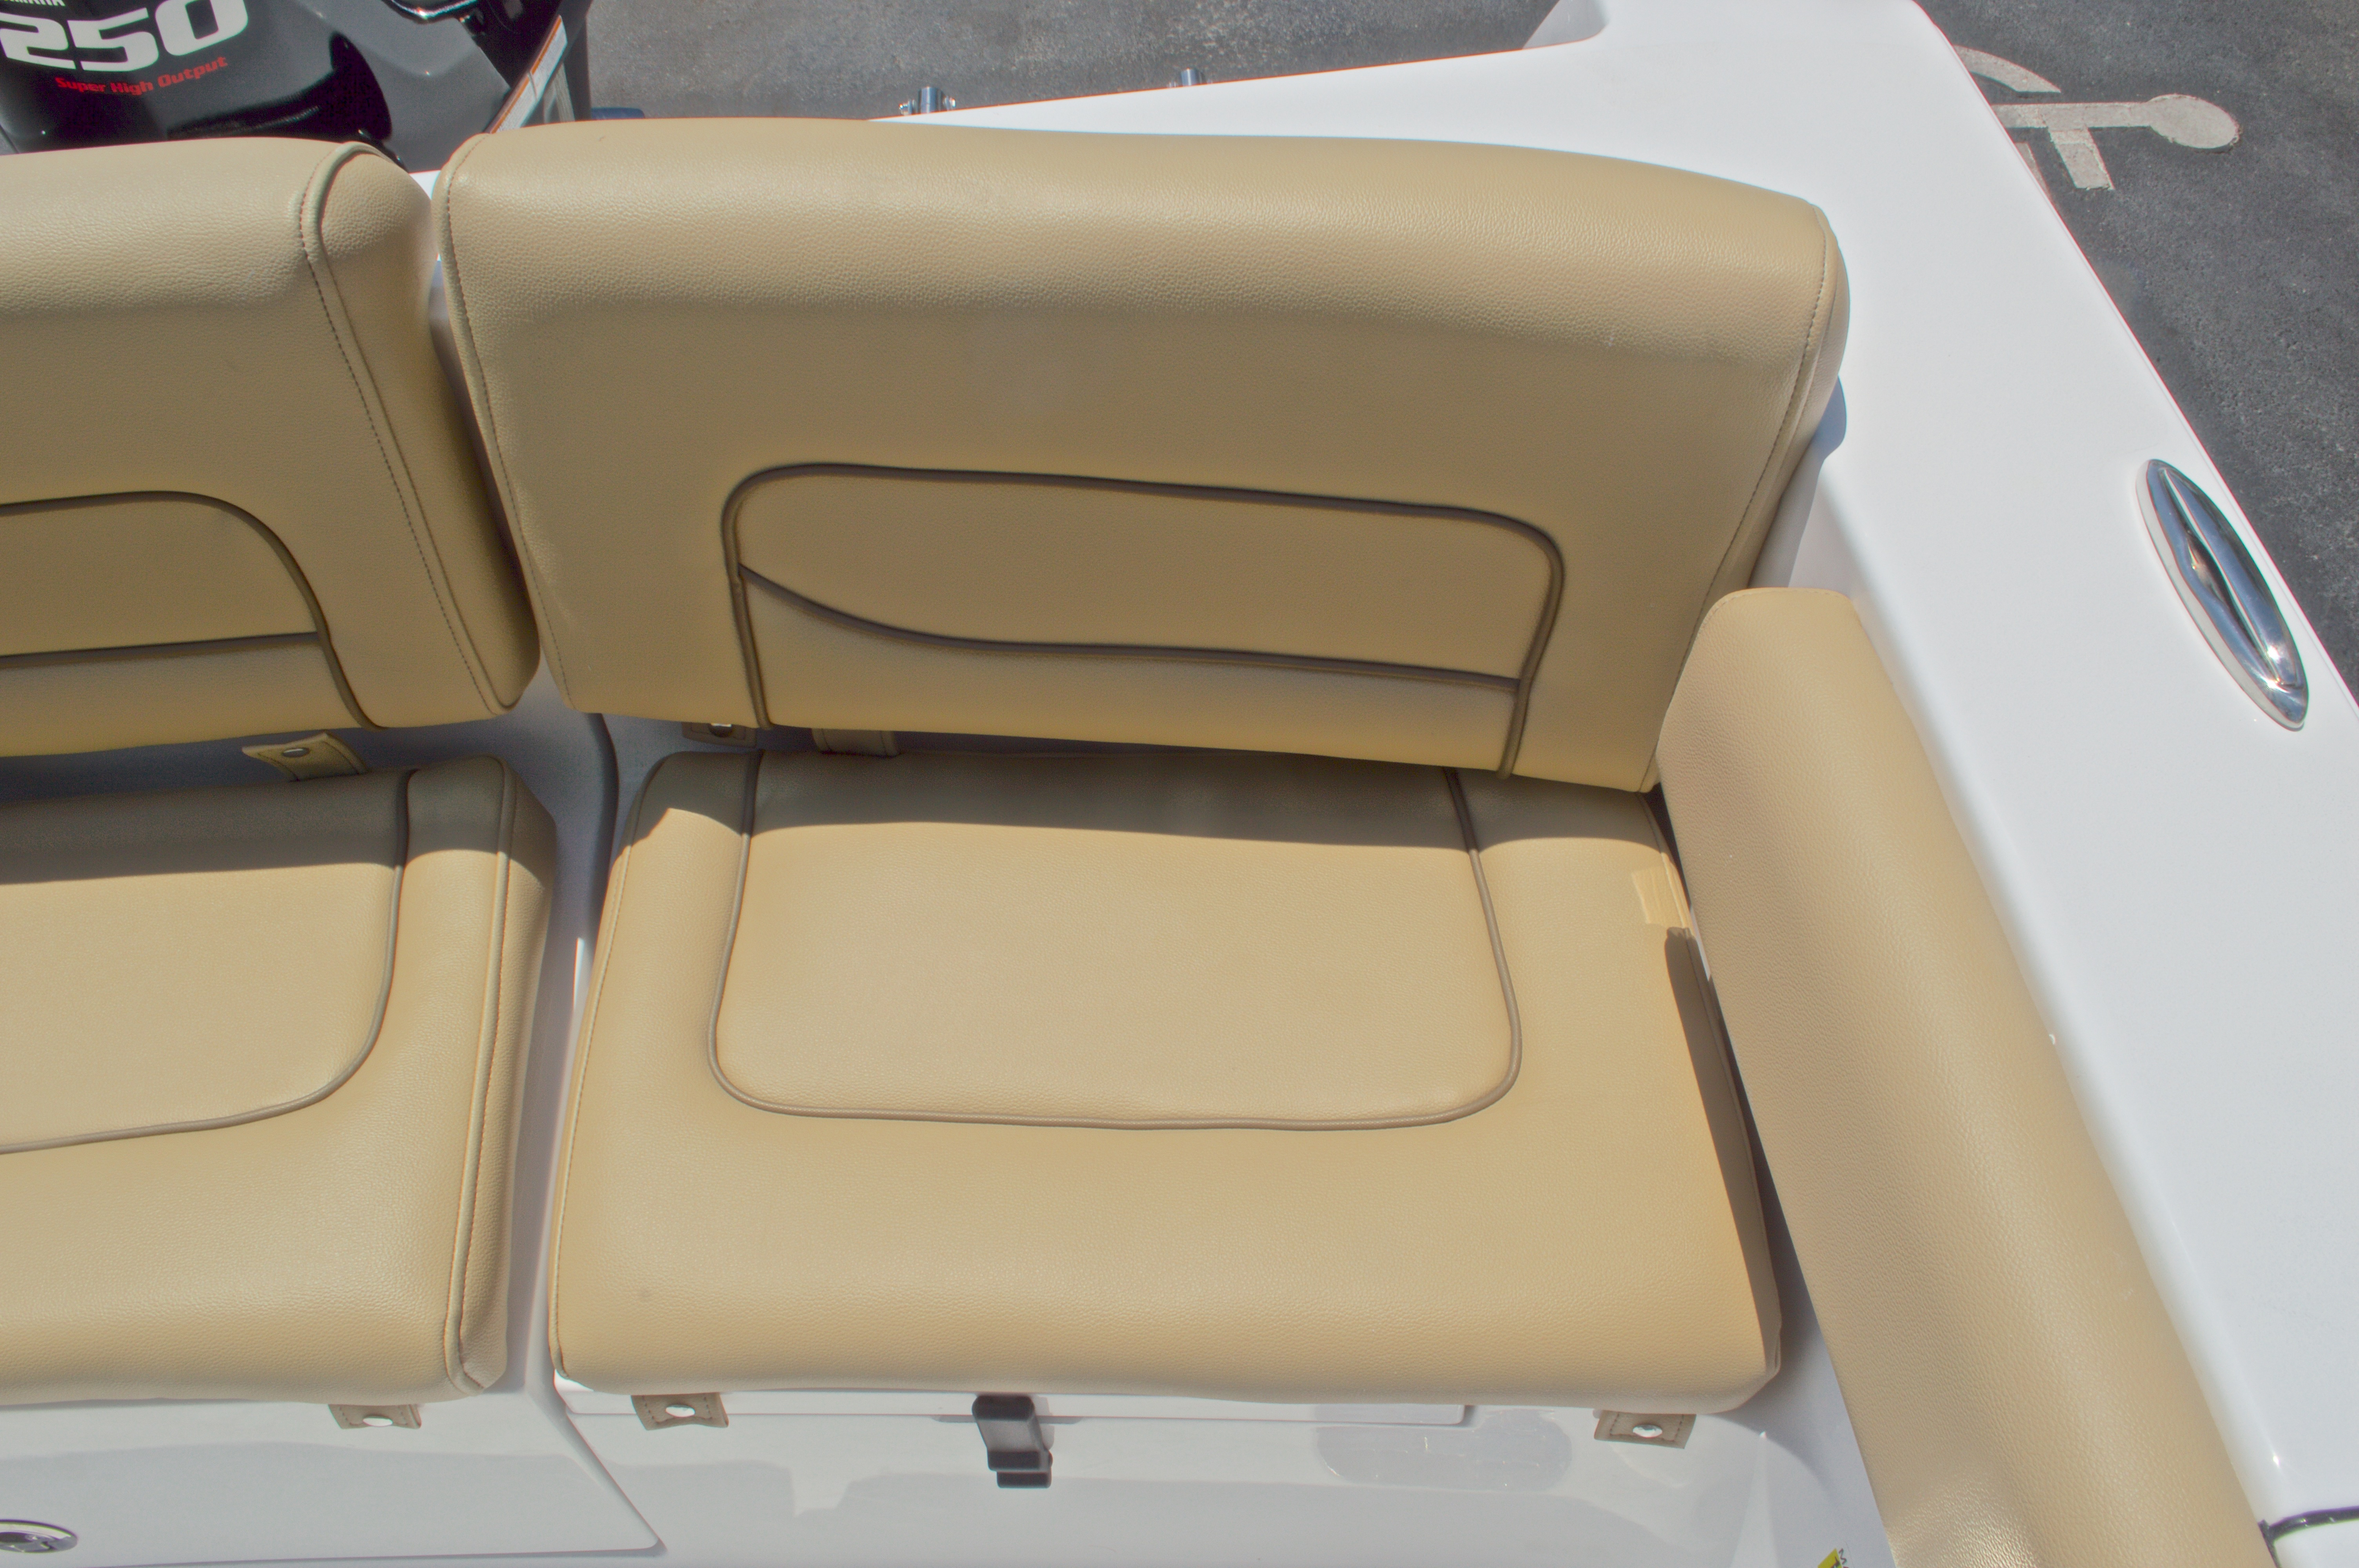 Thumbnail 17 for New 2016 Sportsman Heritage 231 Center Console boat for sale in West Palm Beach, FL